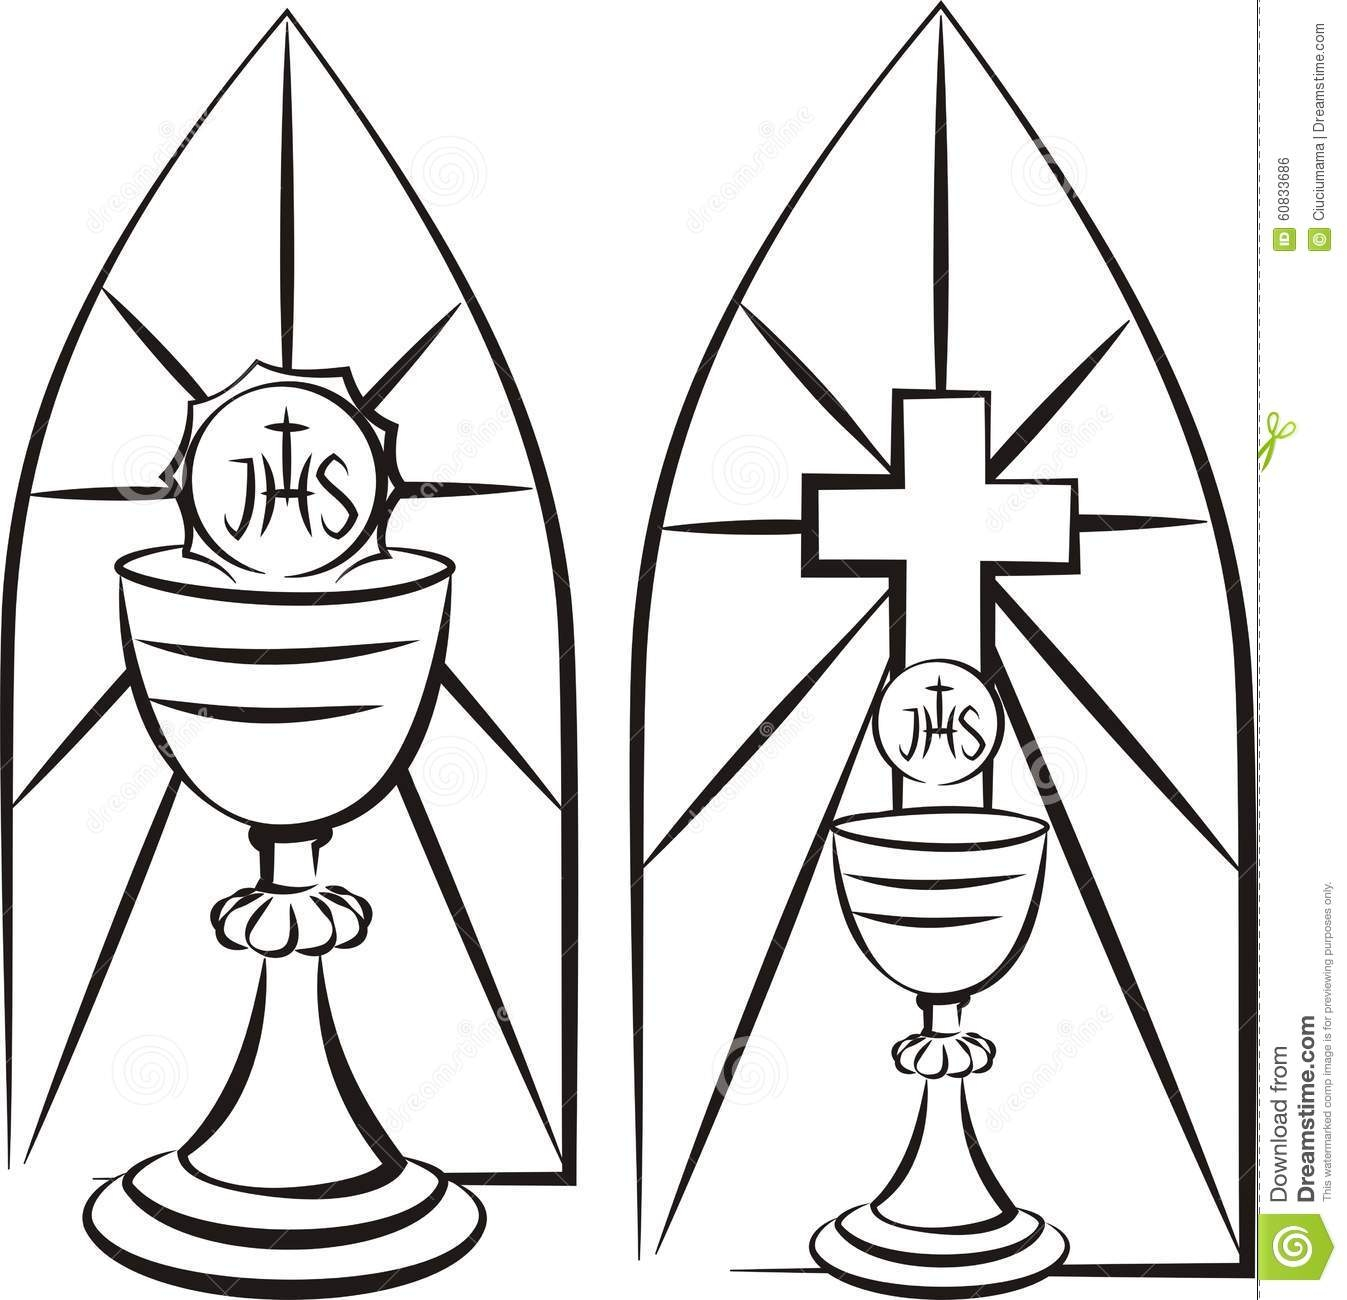 harvest coloring pages - stock illustration chalice background stained glass first holy munion black white vector outlines eucharist image